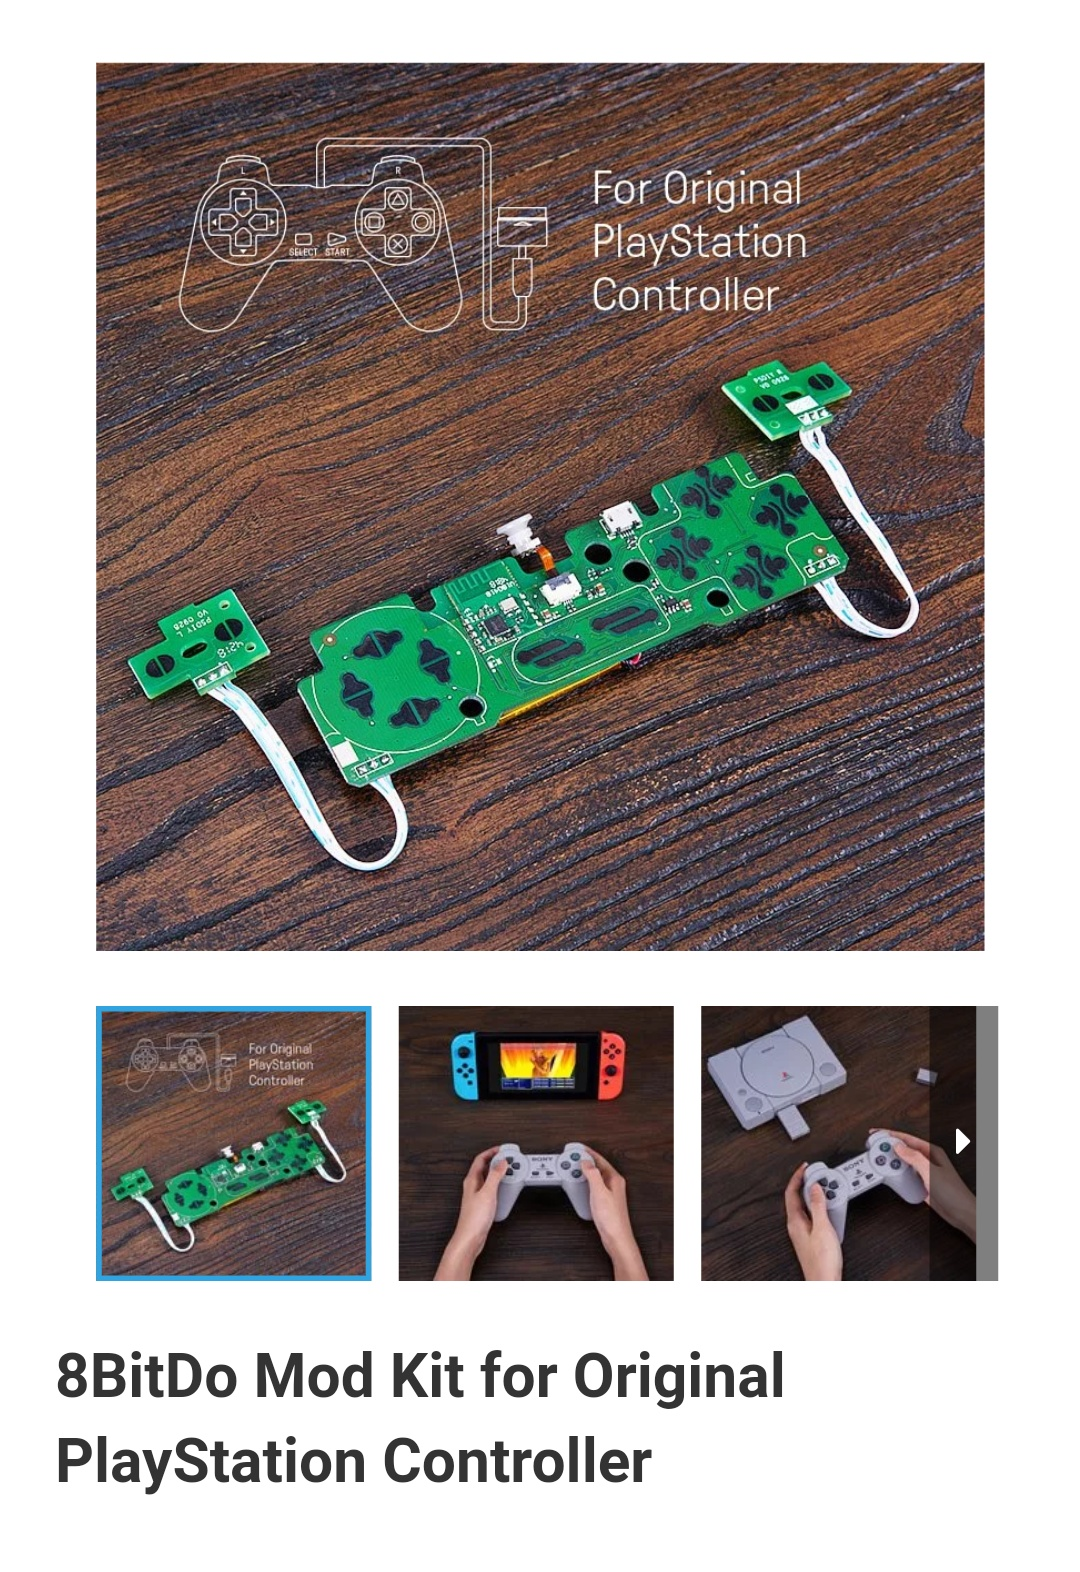 8Bitdo-Diy-Mod Kit-Playstation-Belchine-1